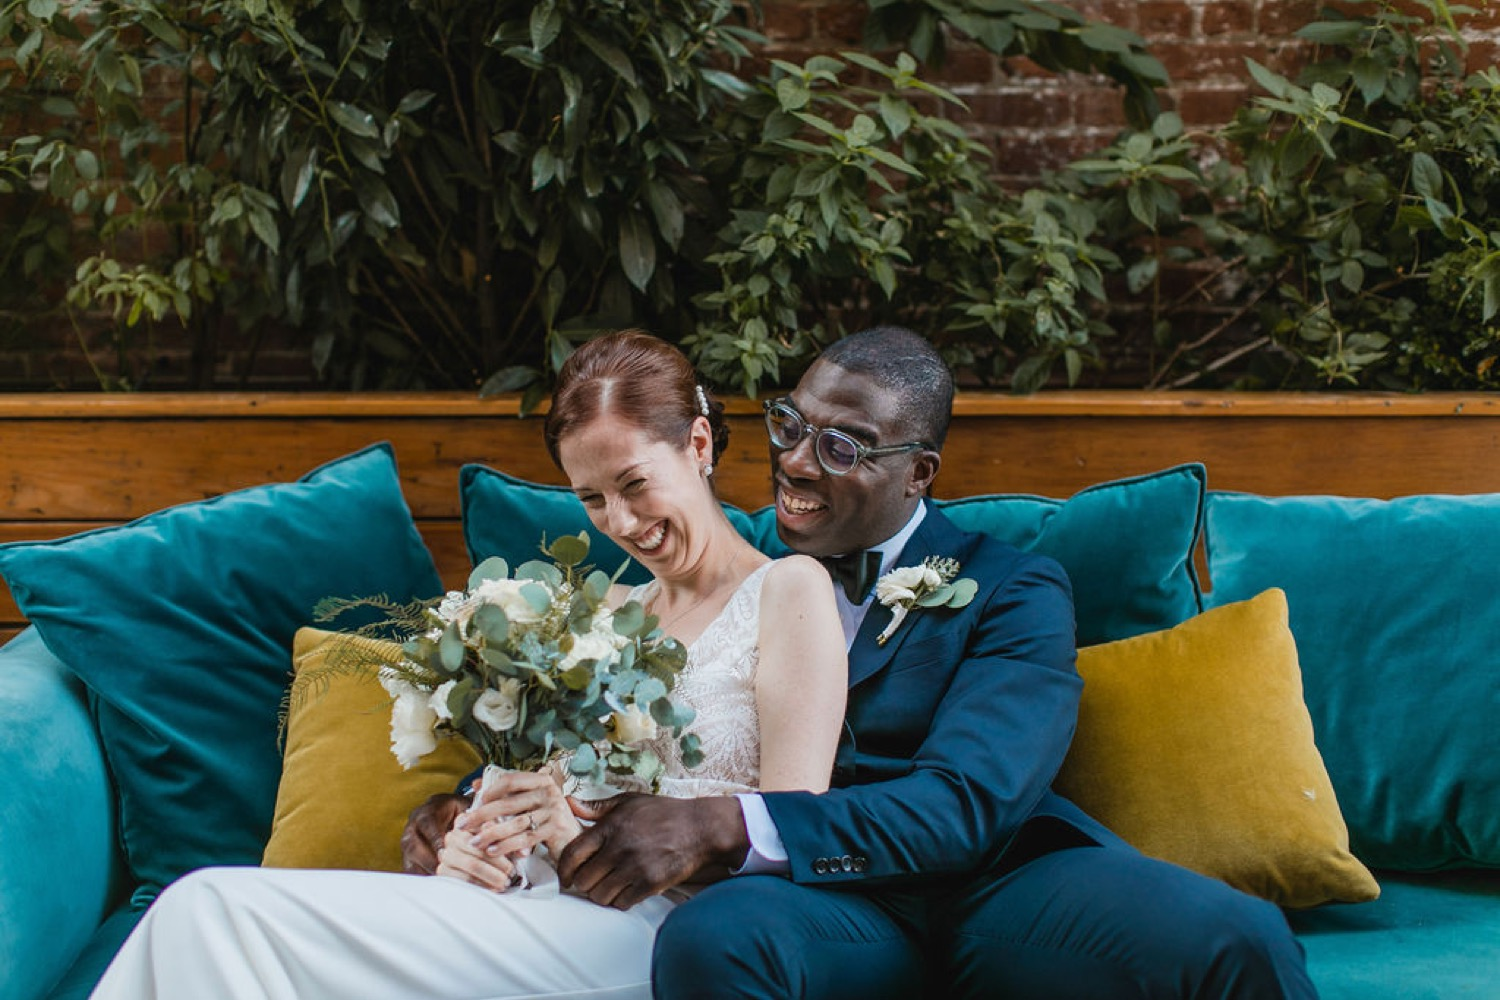 The bride and groom posing on a teal velvet couch at their wedding in NYC.